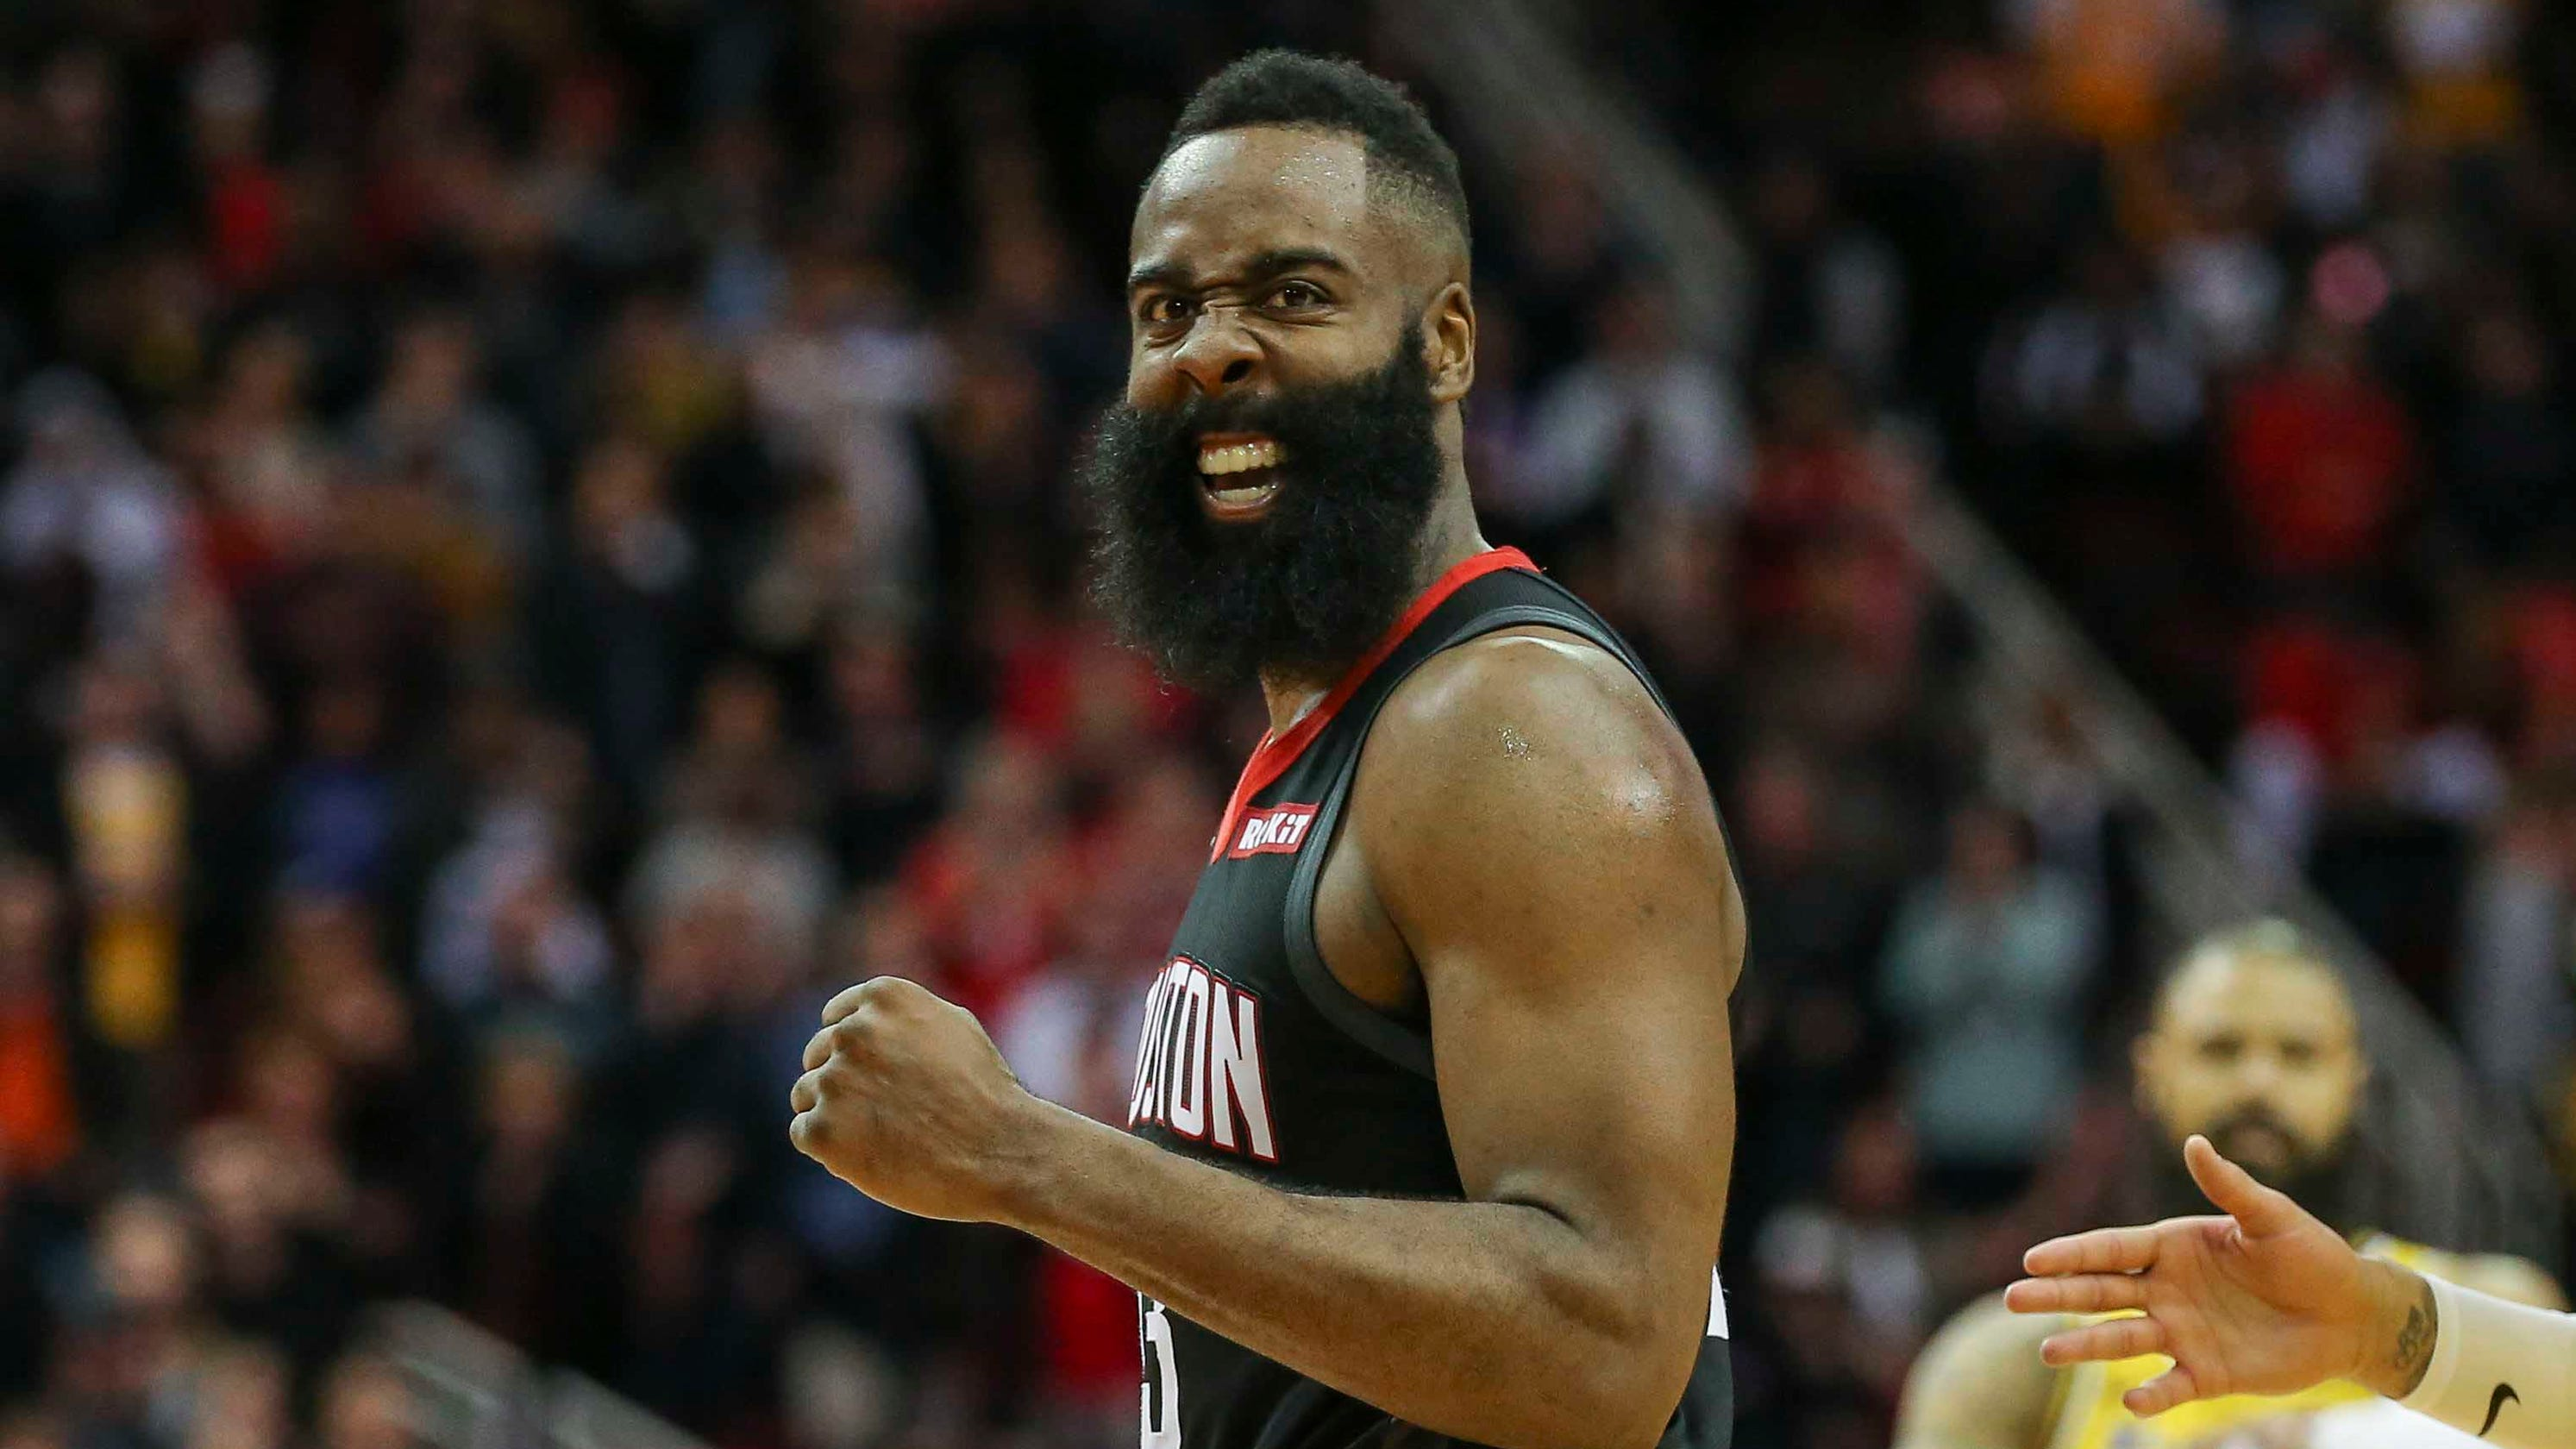 c4d26289fde9 Harden drops 48 to rally Rockets past Lakers in OT thriller